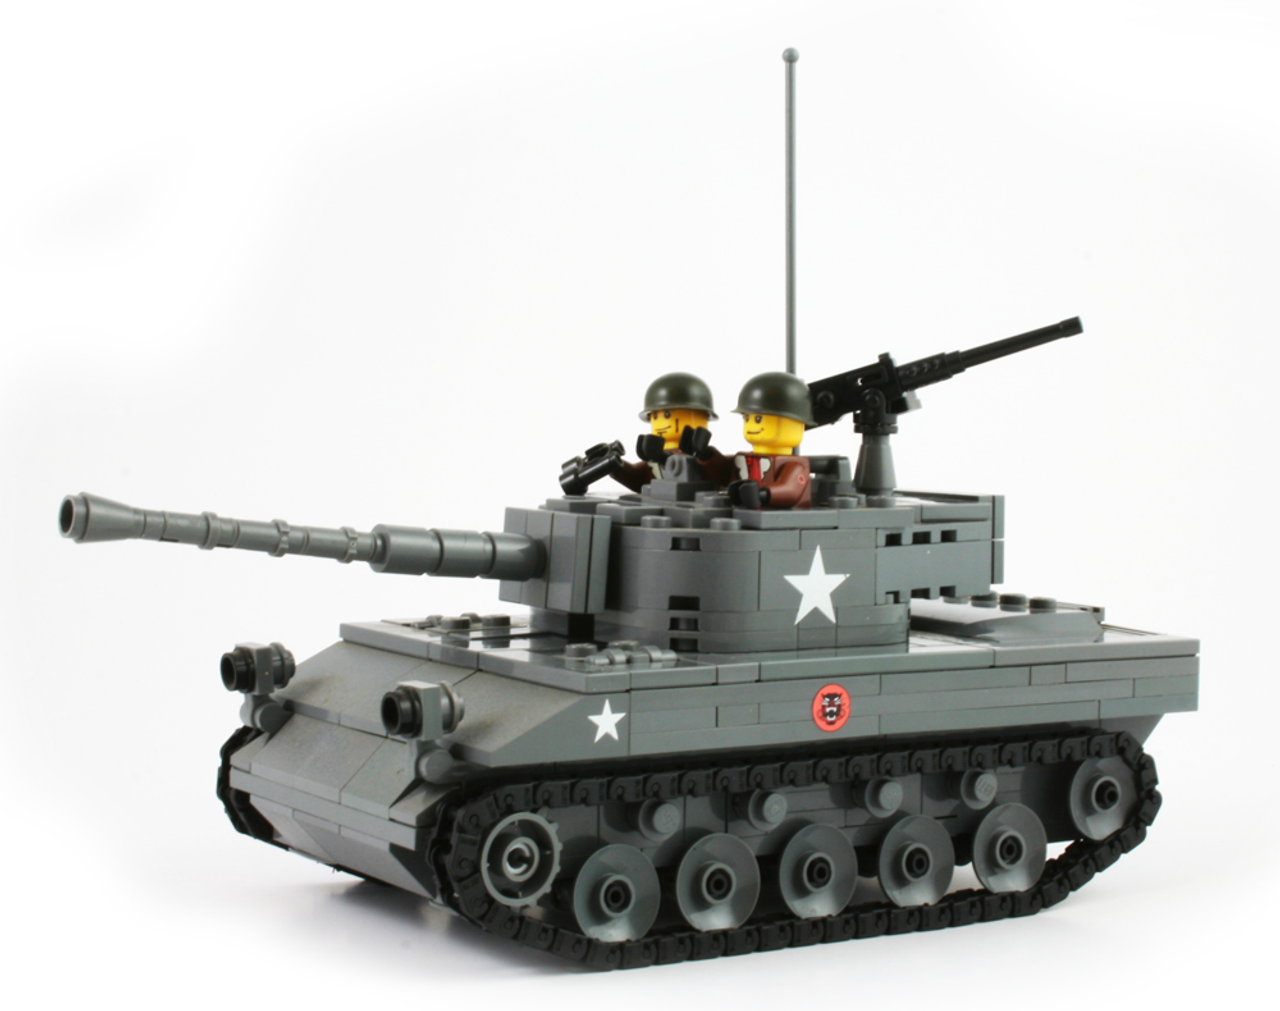 M18 Hellcat with M2HB